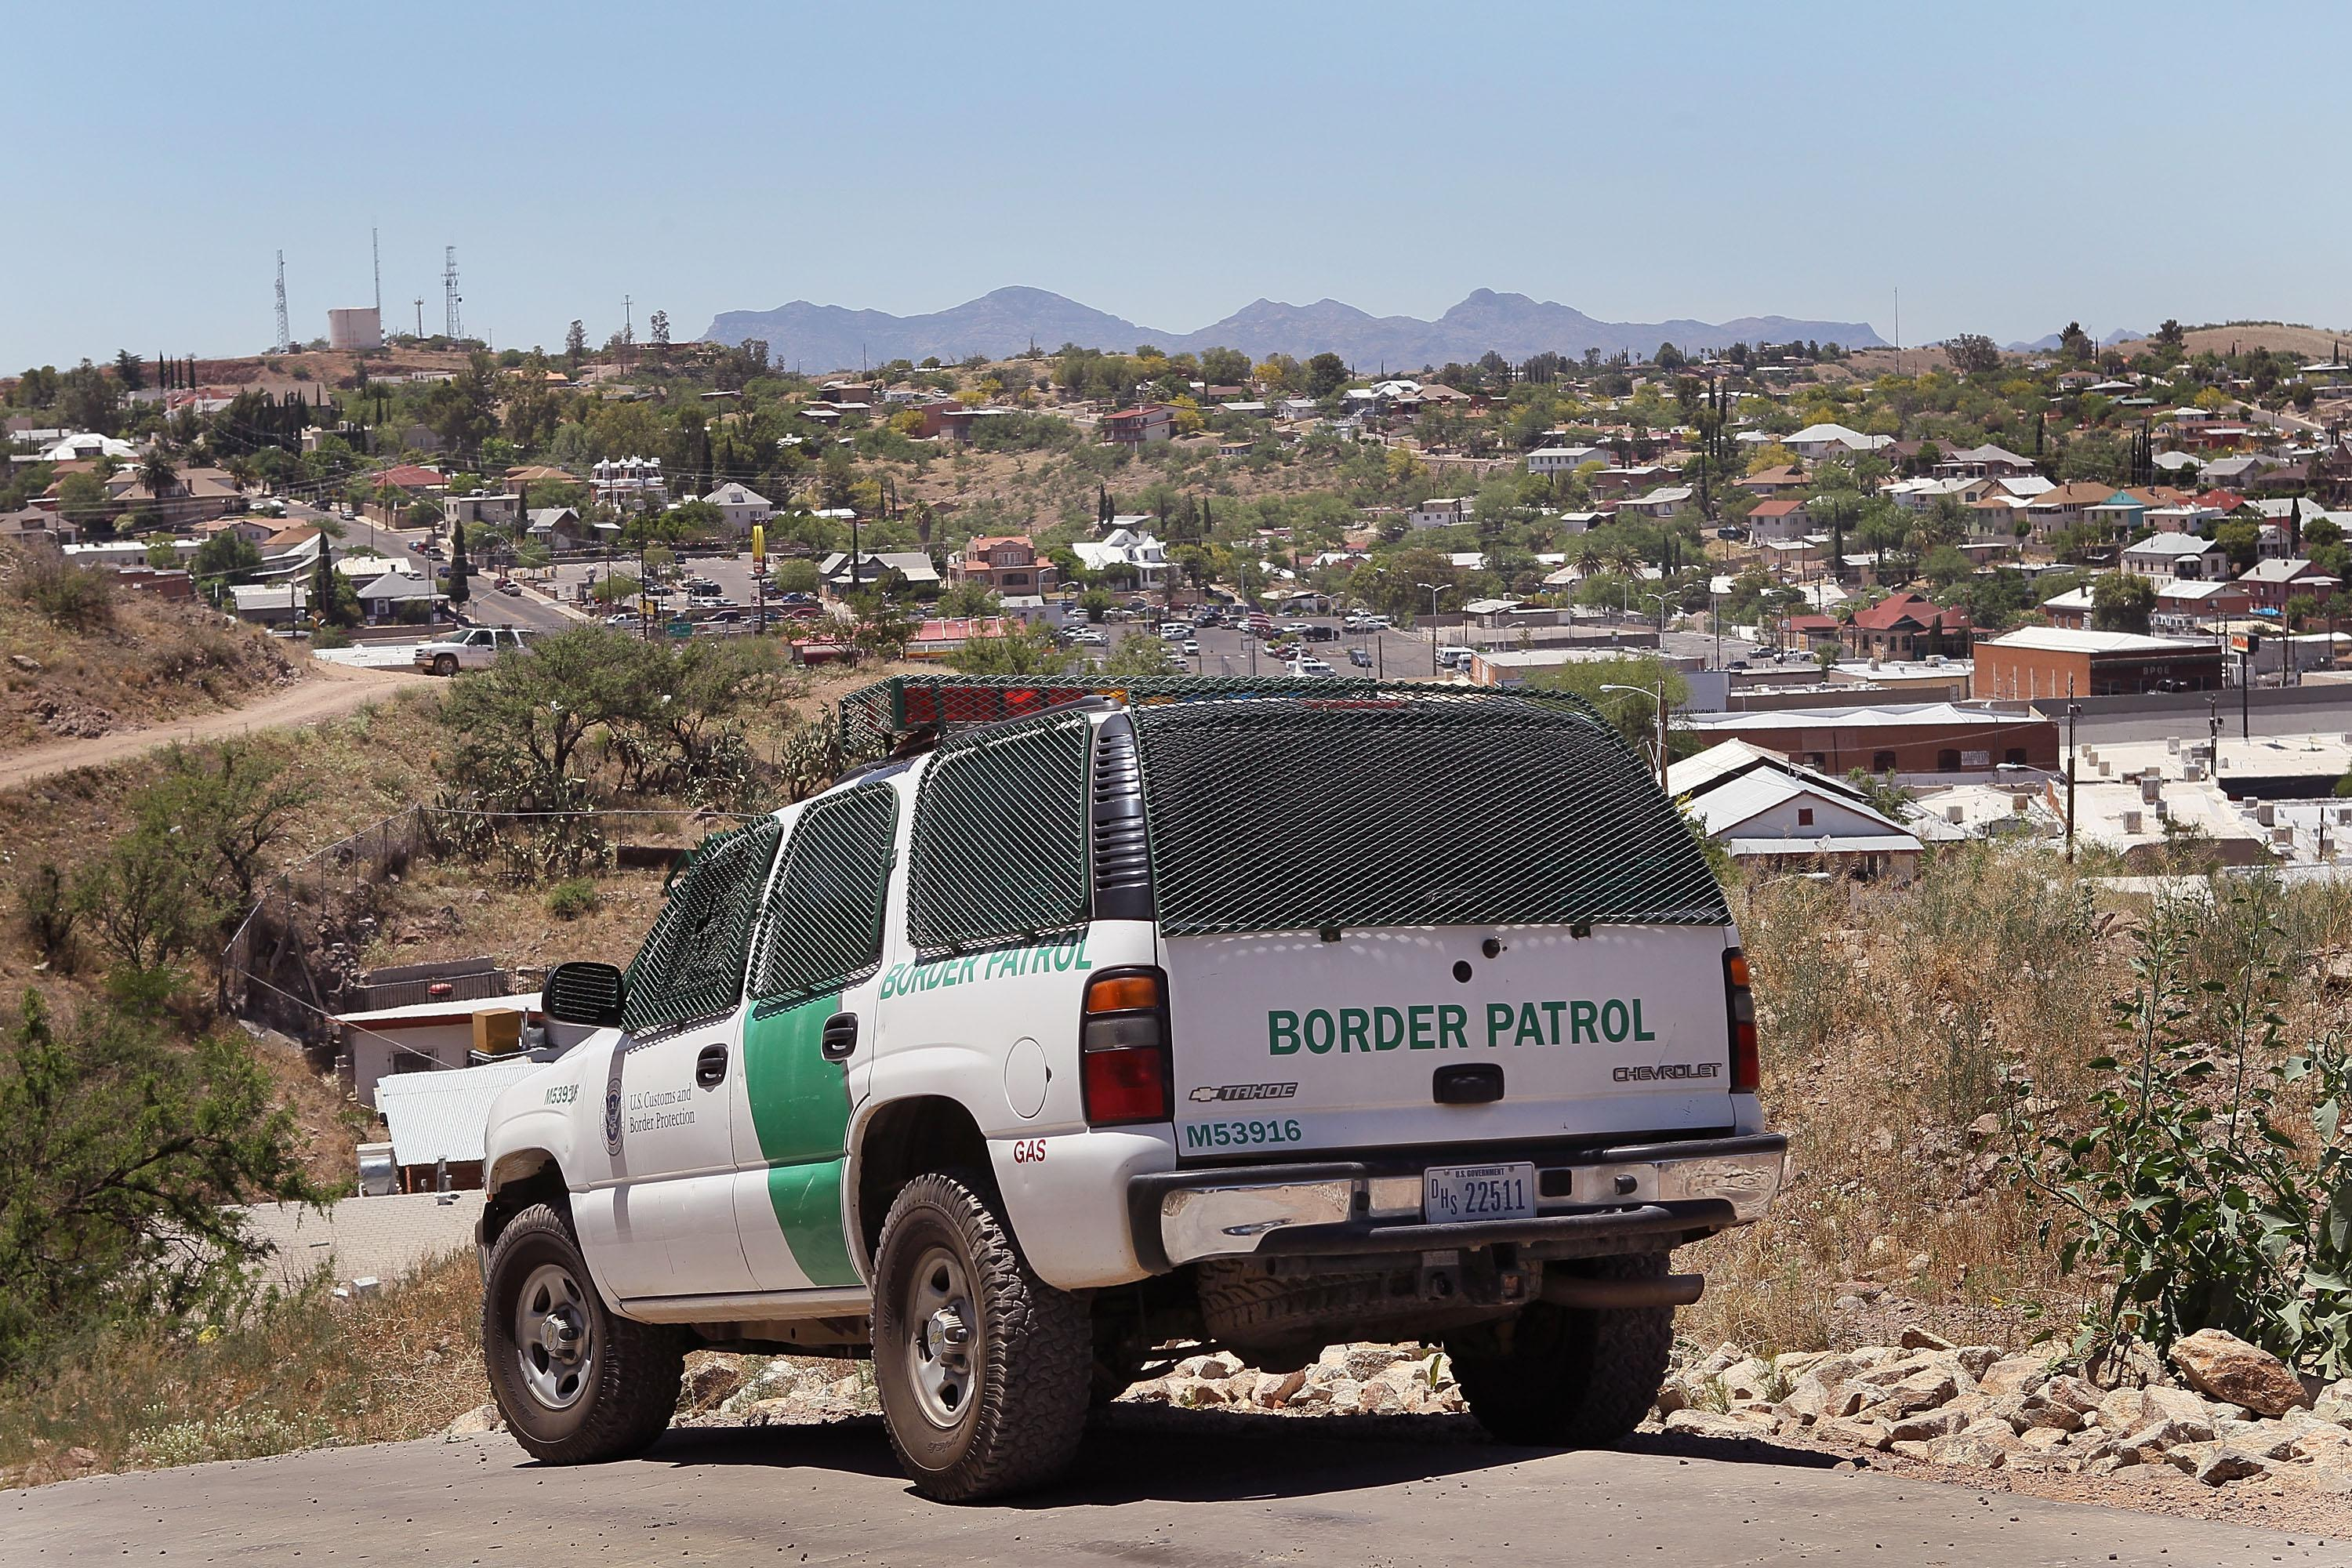 Border Patrol Detained Two US Citizens For 'Speaking Spanish' at Gas Station